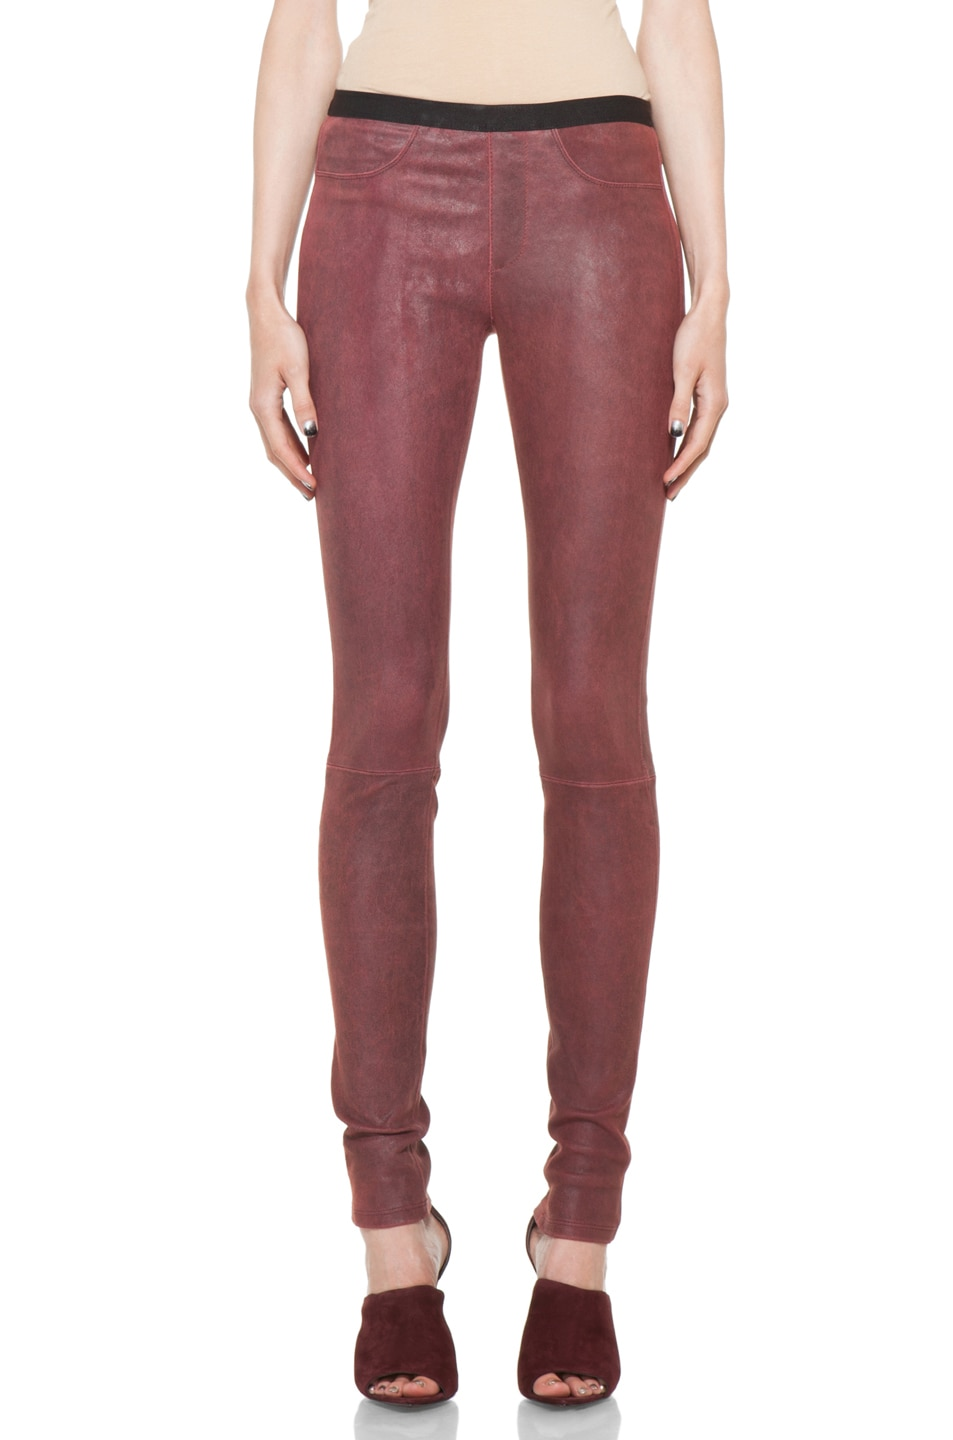 Image 1 of Helmut Lang Patina Stretch Cheyenne Leather Legging in Fever